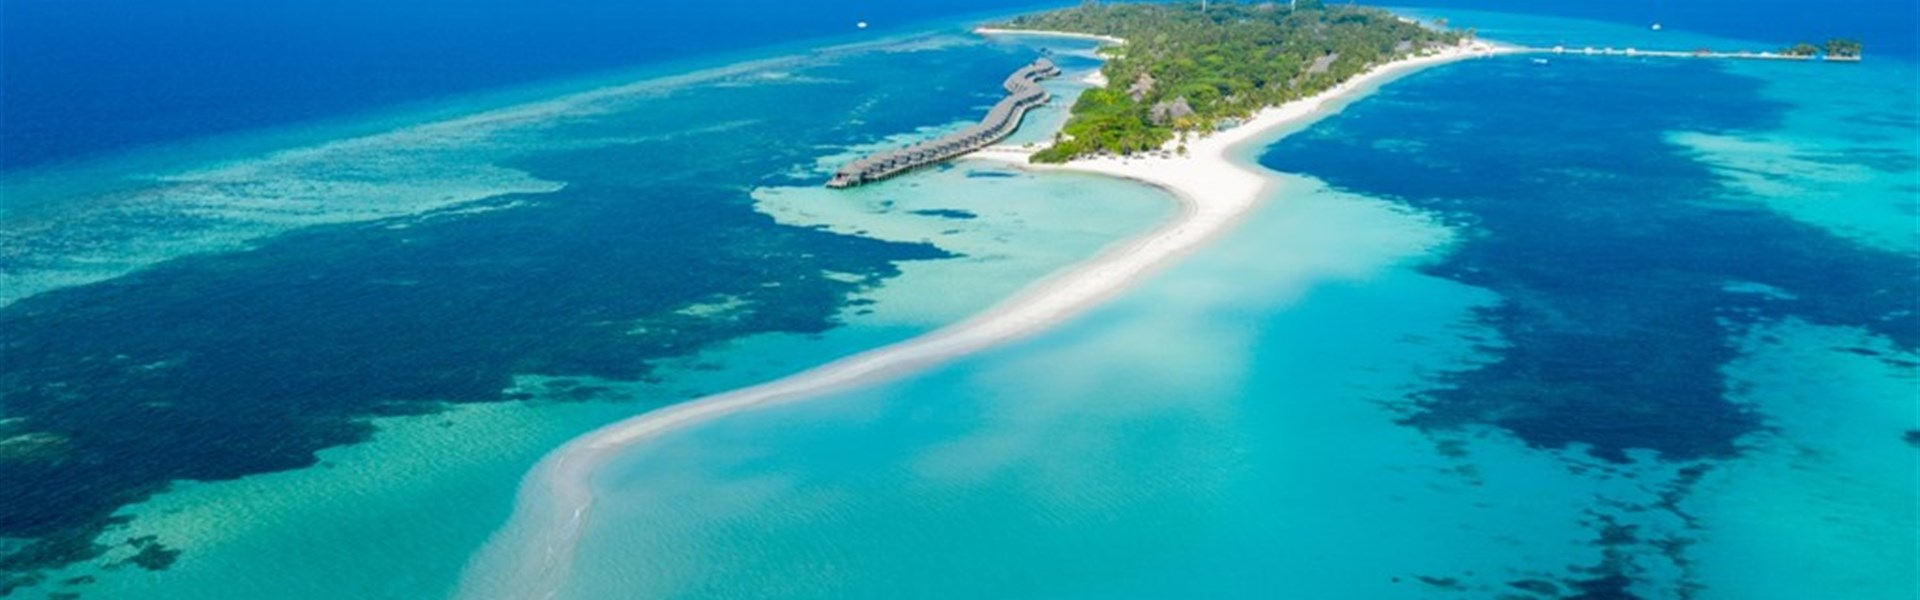 Marco Polo - Kuredu Island Resort & Spa -